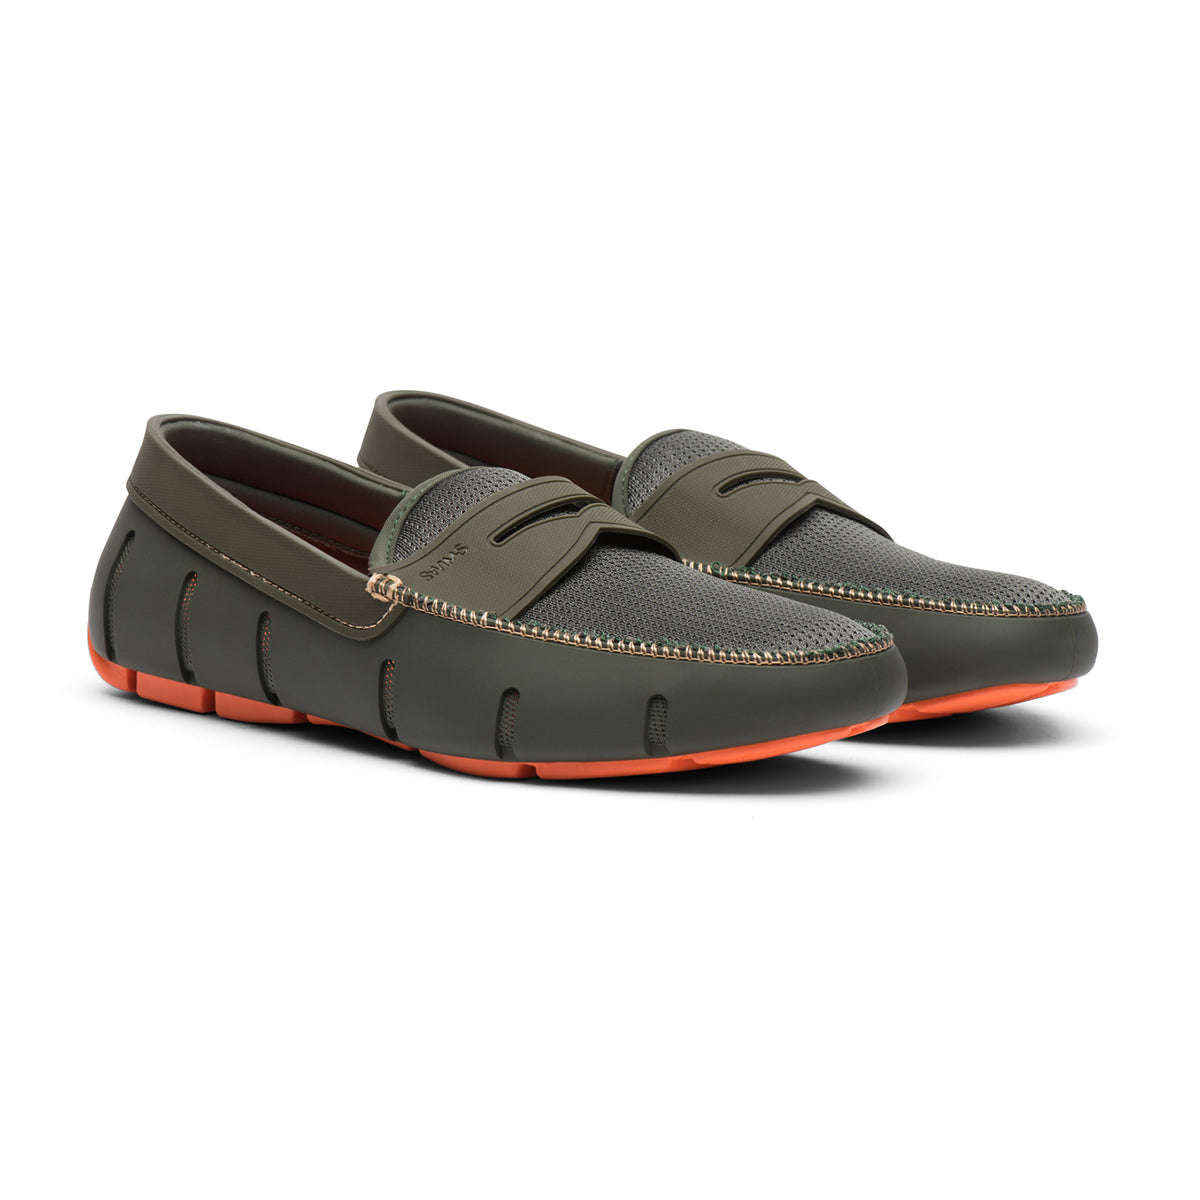 Penny Loafer - background::white,variant::Olive/Orange